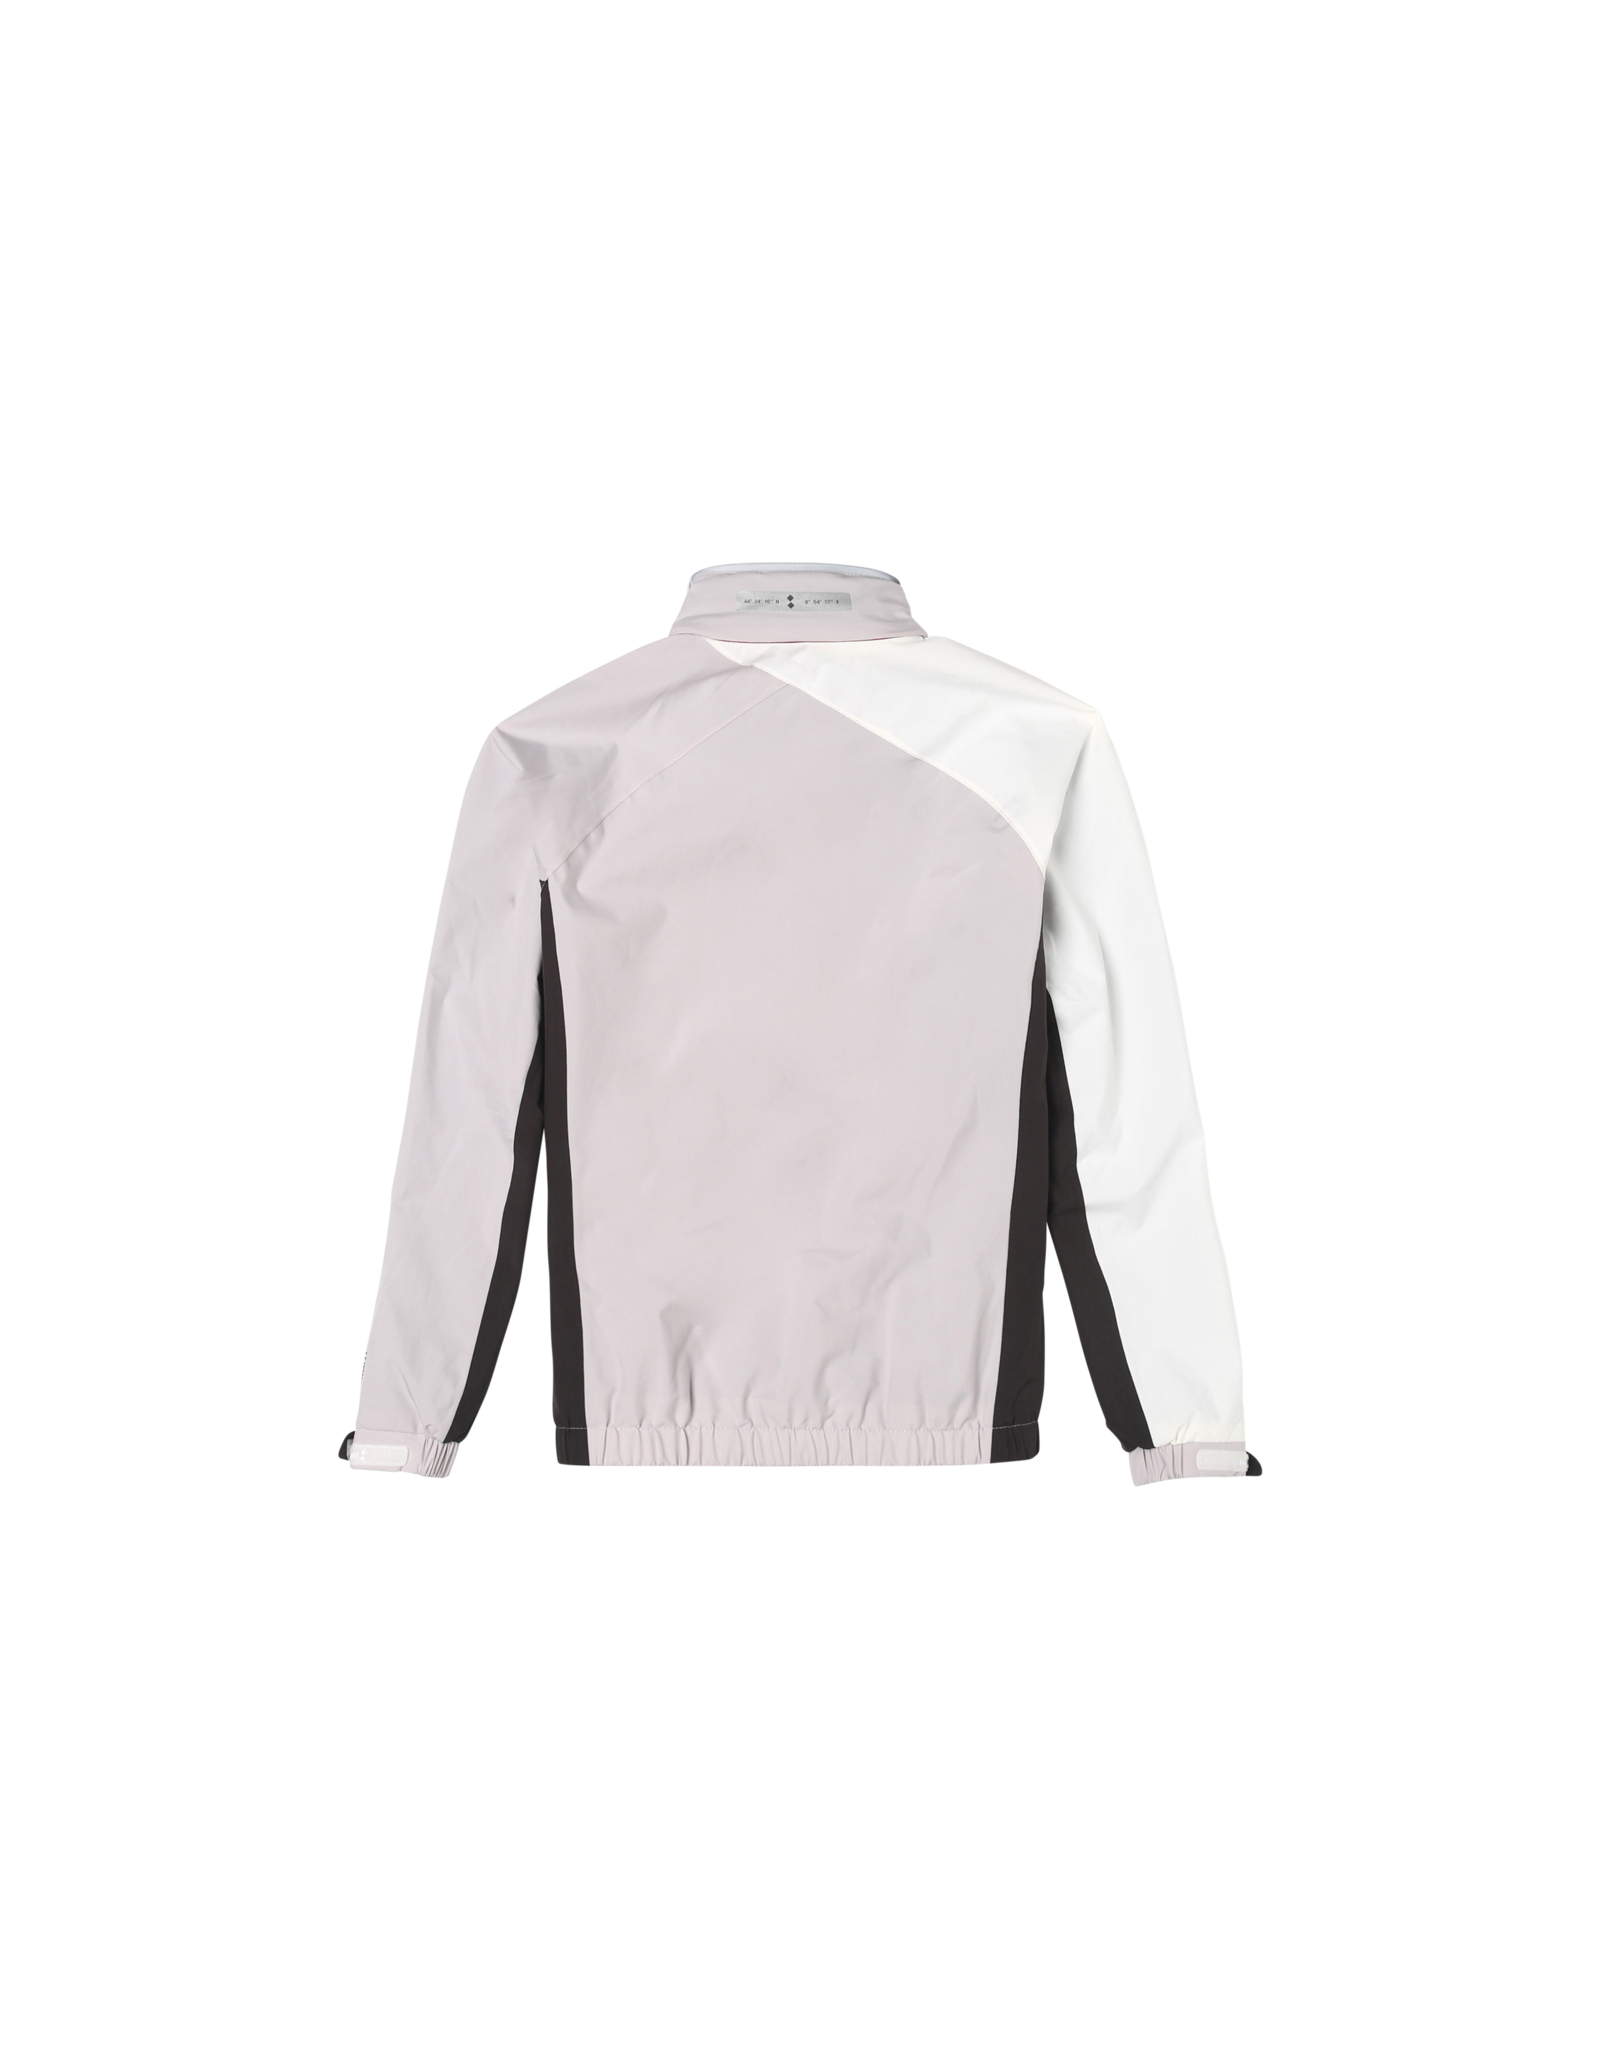 Slam Jacket Siffert - Light grey/white (161)